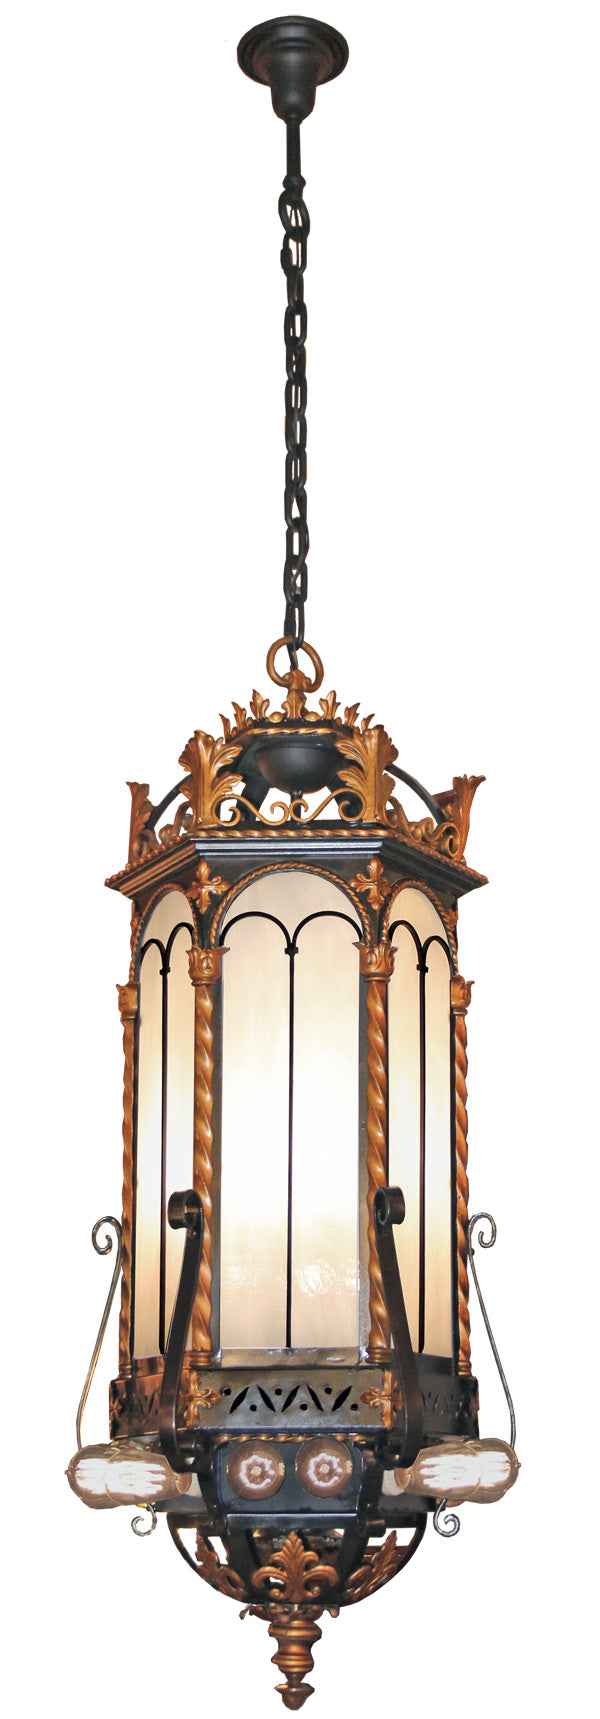 Outstanding Antique Circa 1910-20s Era Commercial Beaux Arts Lantern